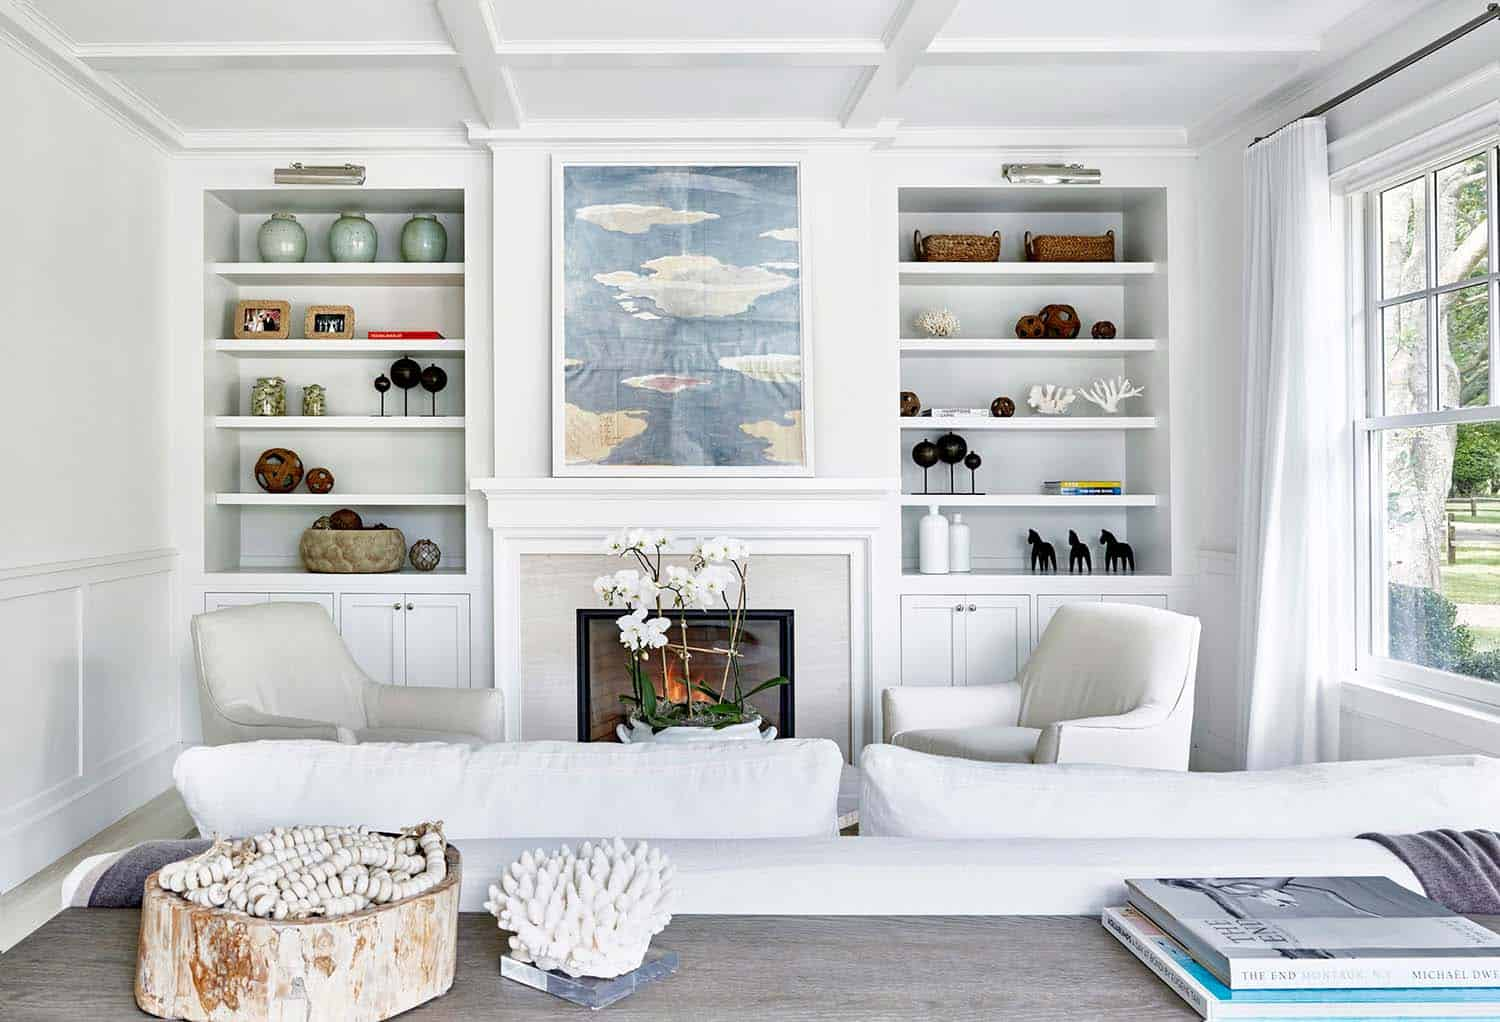 Amagansett Beach House-Chango-Co-14-1 Kindesign